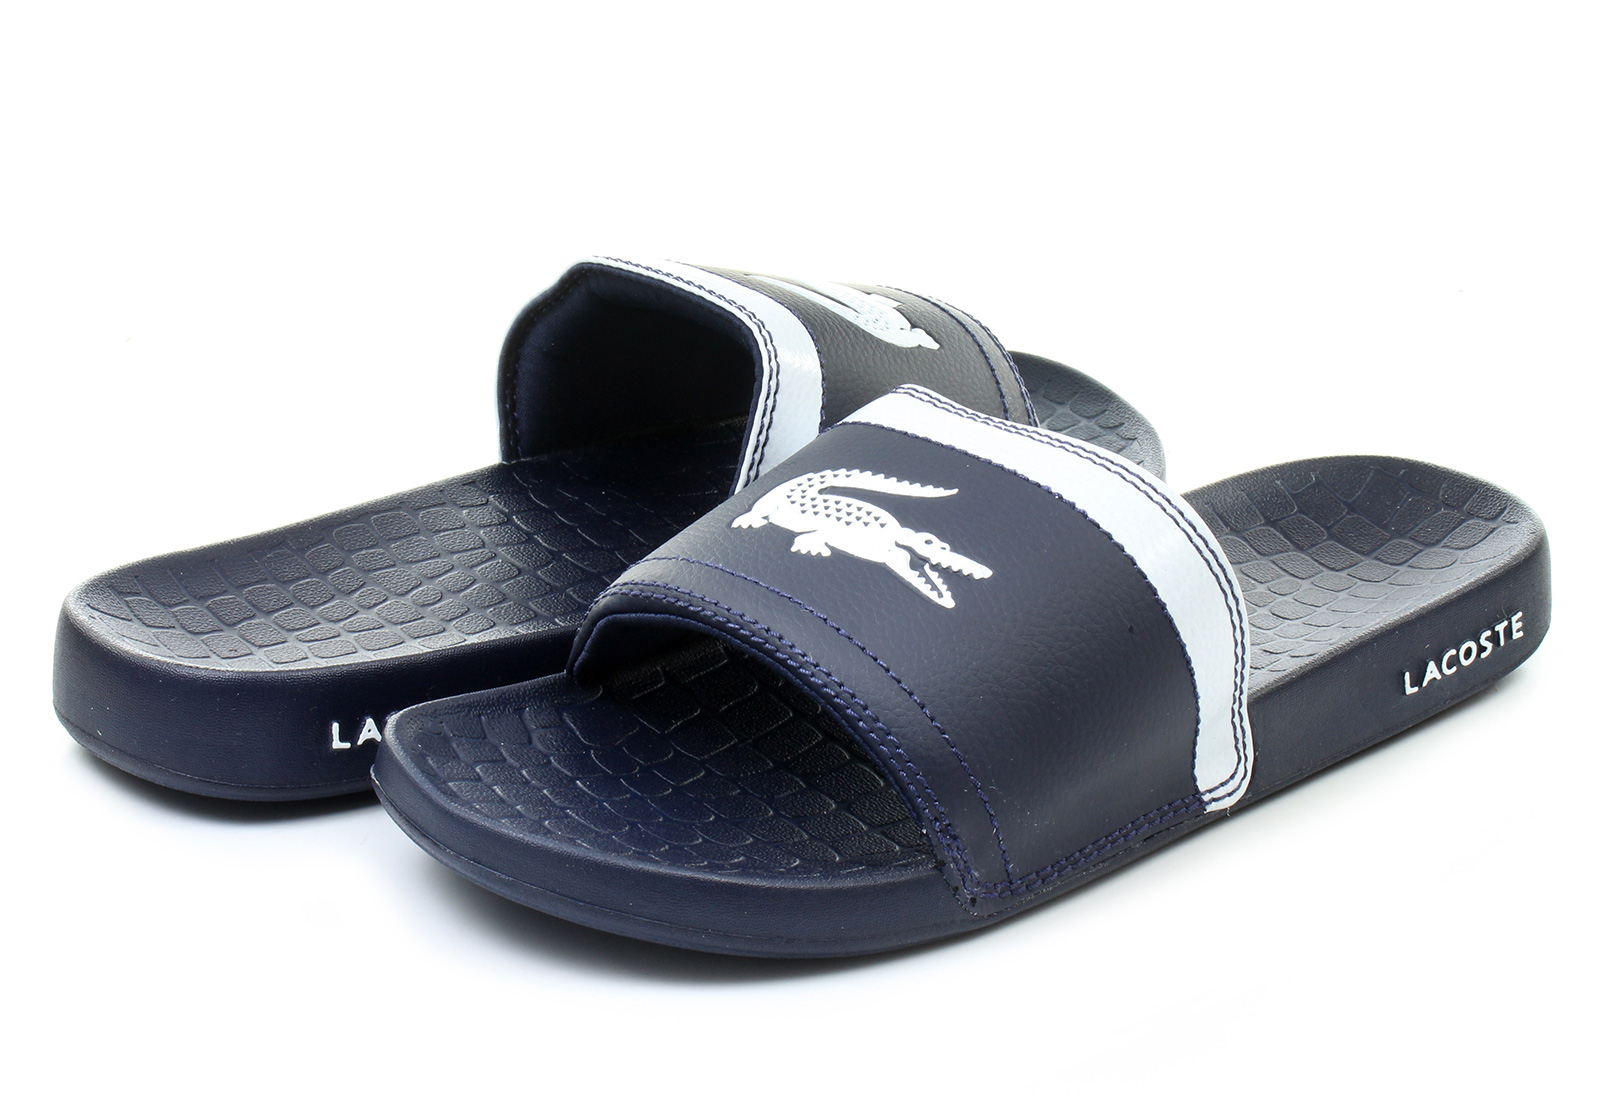 2807ef05b98d Lacoste Slippers - Fraisier - 151spm0057-121 - Online shop for ...